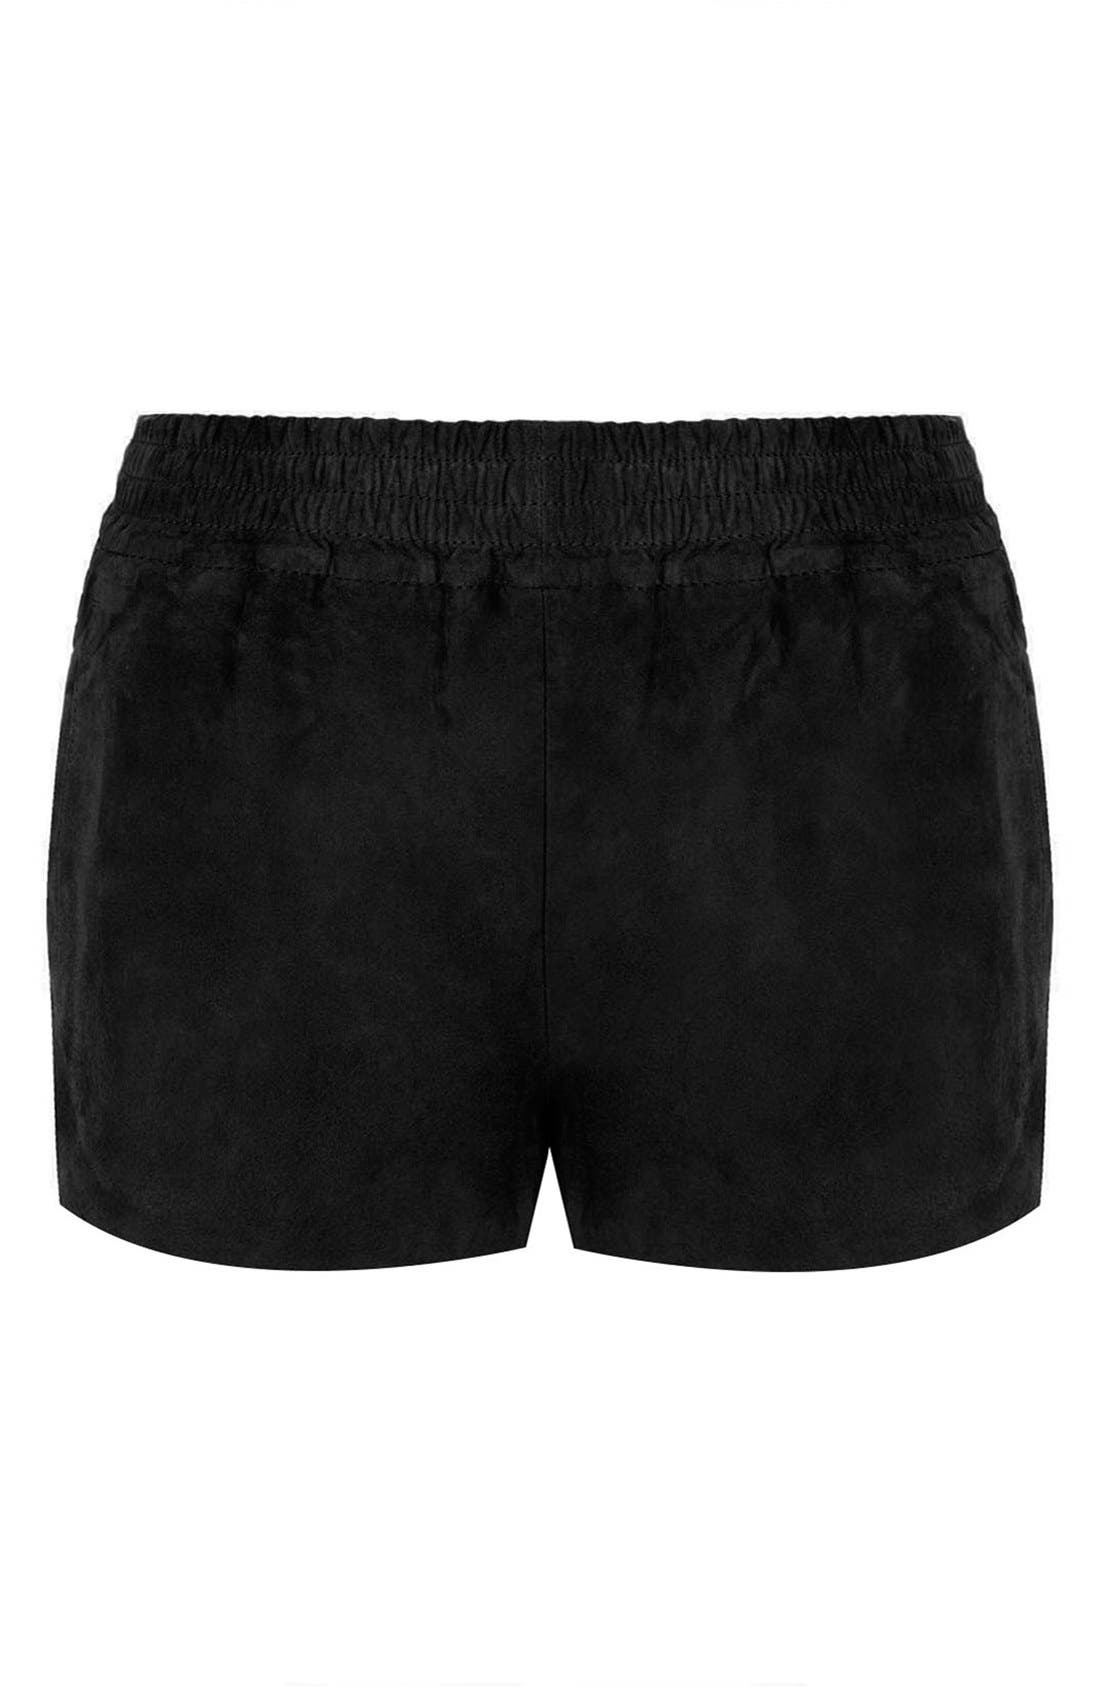 Alternate Image 3  - Kate Moss for Topshop Suede Runner Shorts (Online Only)